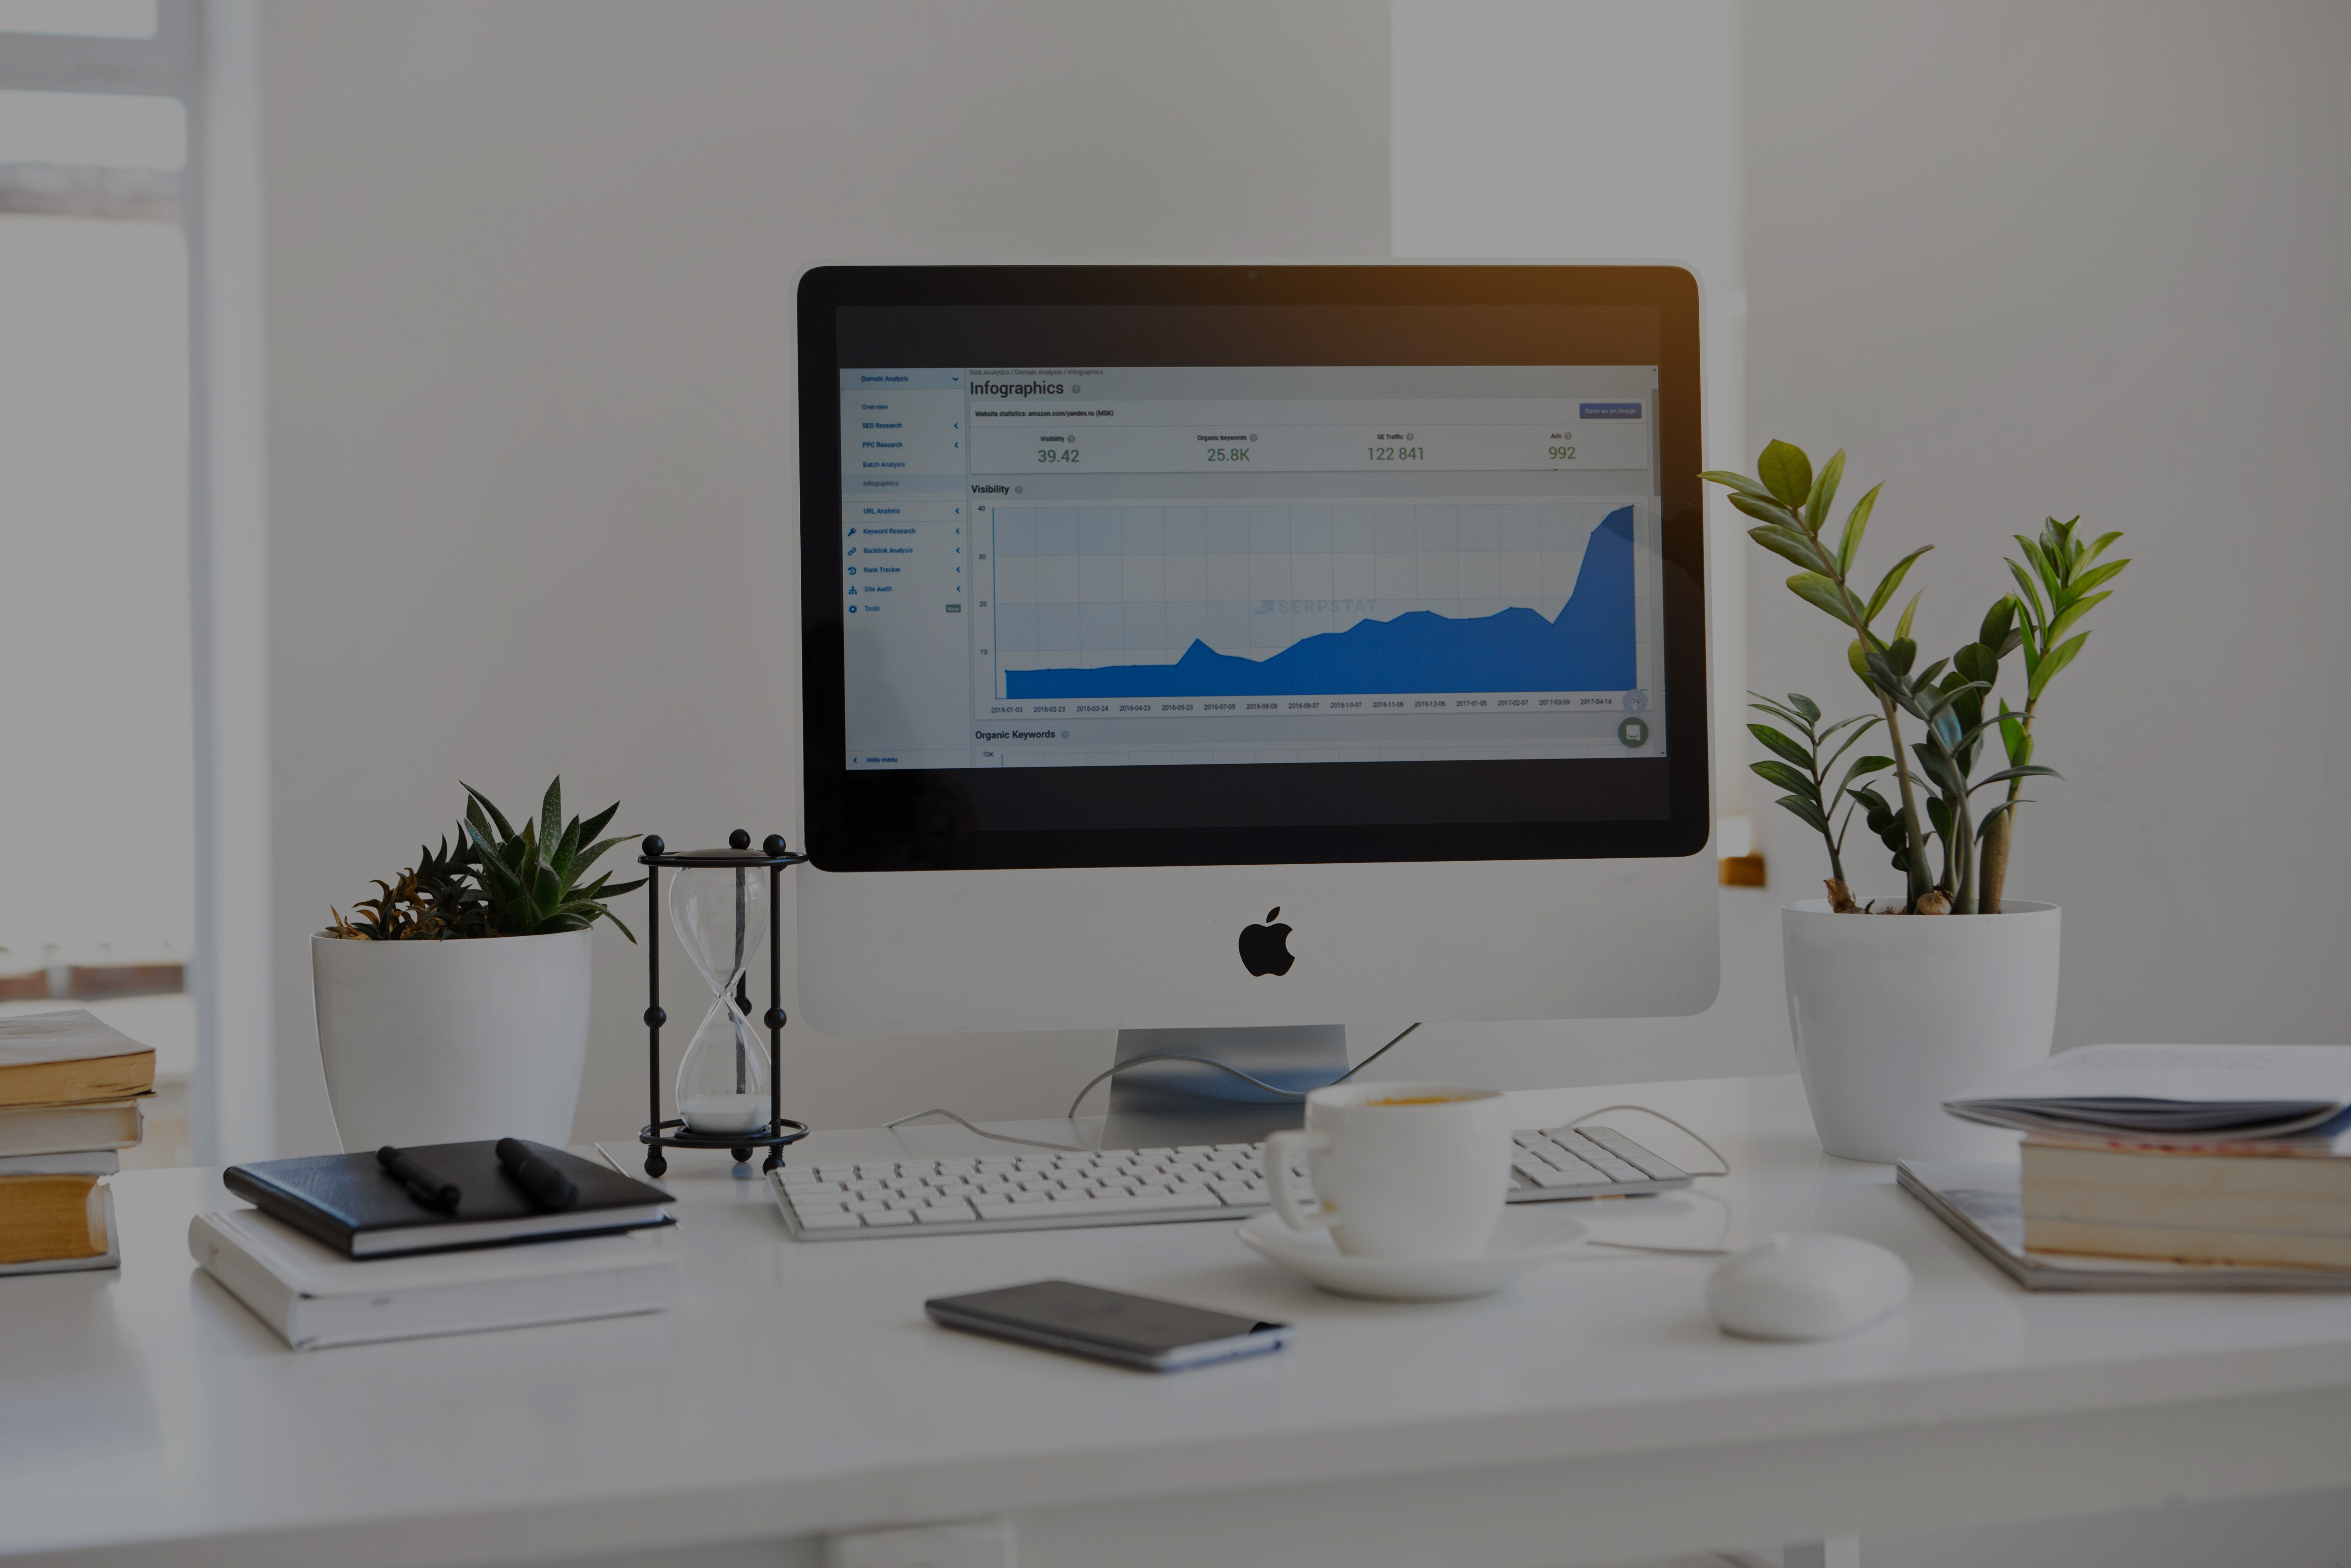 Client Interview: From ZERO Leads to Boutique Growth